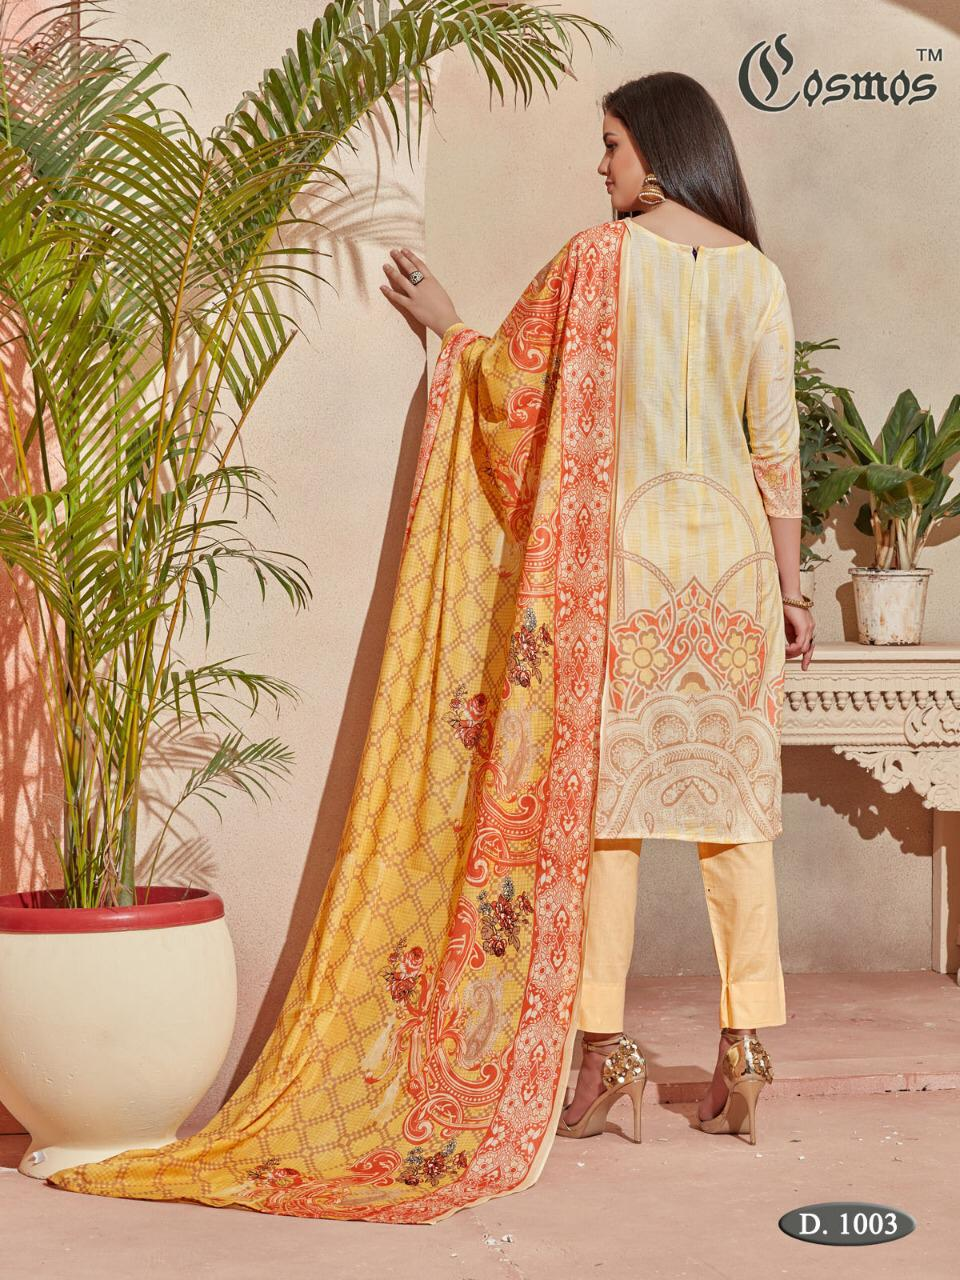 56322e8fd9 COSMOS FASHION SAADIA NOOR LAWN VOL 1 PAKISTANI SUITS WHOLESALE IN SURAT  (25).